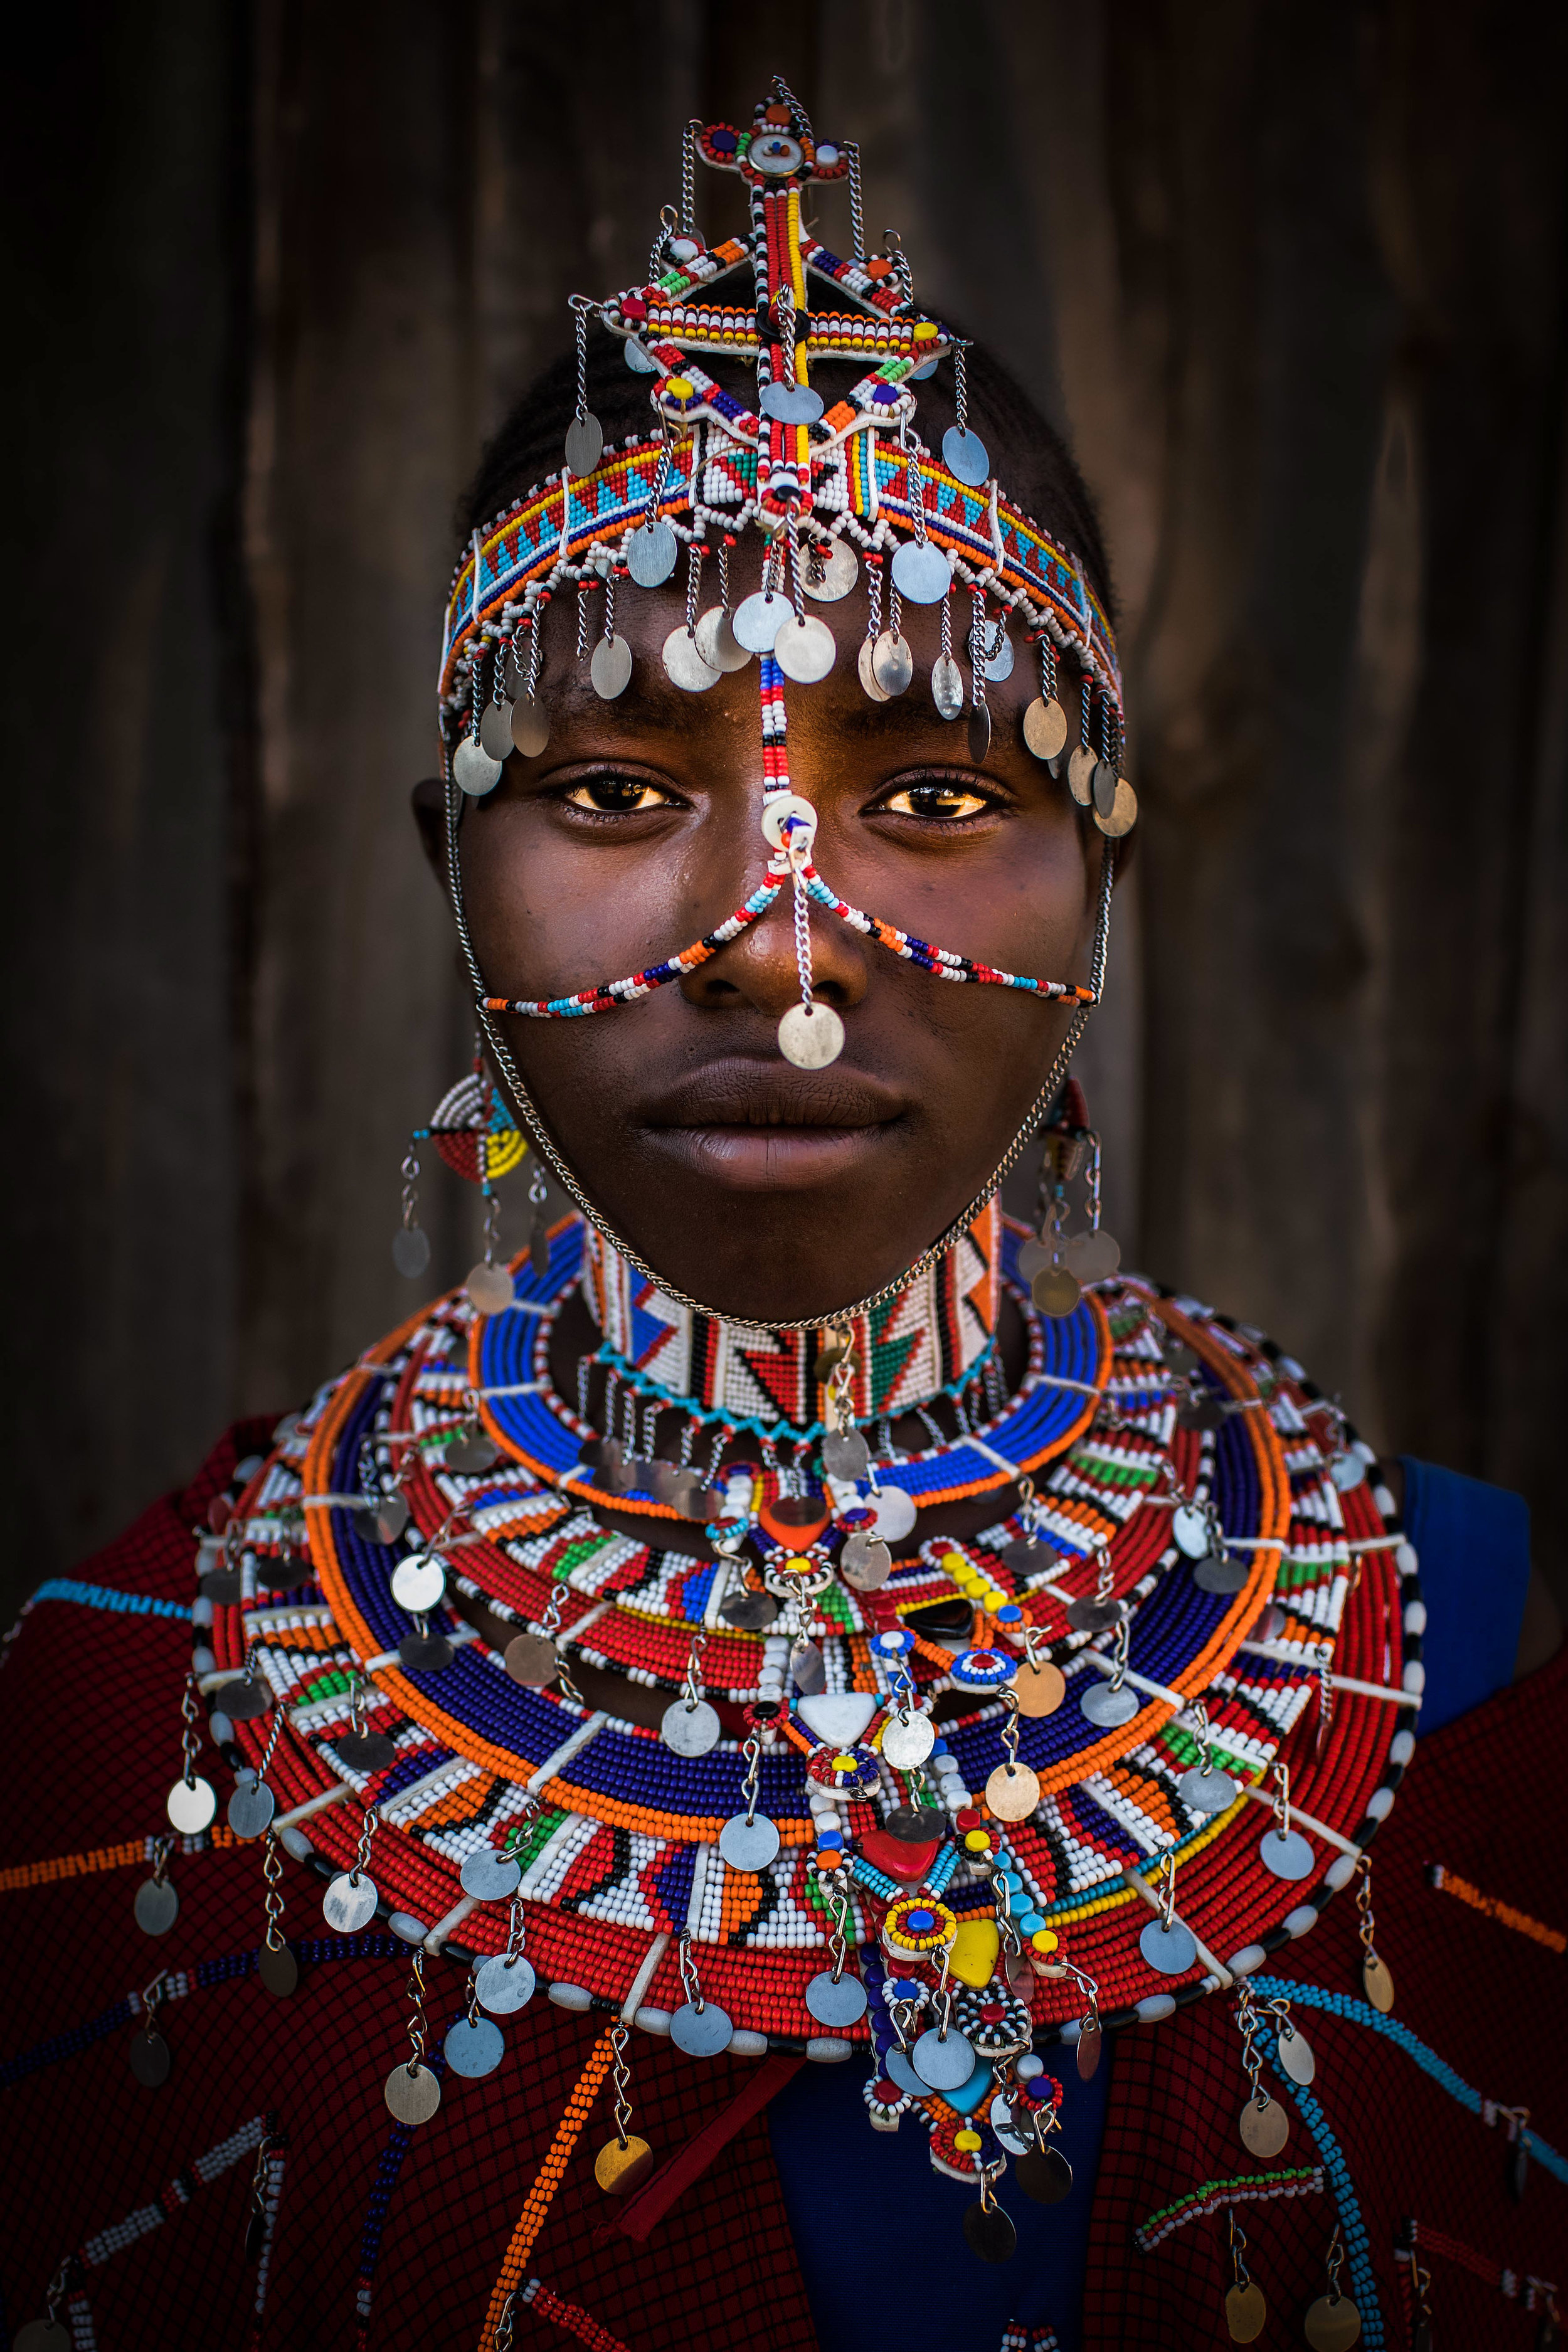 Growing up Female in Maasai Society from the series A Centuries Old Maasai Custom: Female Genital Mutilation: Makuta, Kenya. The series aims to advocate for and alongside survivors of female genital mutilation. Growing up Female in Maasai Society has been awarded 2019 International Color Awards in the category Portrait; 2018 Lucie Foundation International Photography Award | 1st Event/ Social Cause category + Honorable Mention for Culture and Traditions category. Finalists were selected from approximately 16,000 submissions (38,000 images) from over 130 countries.